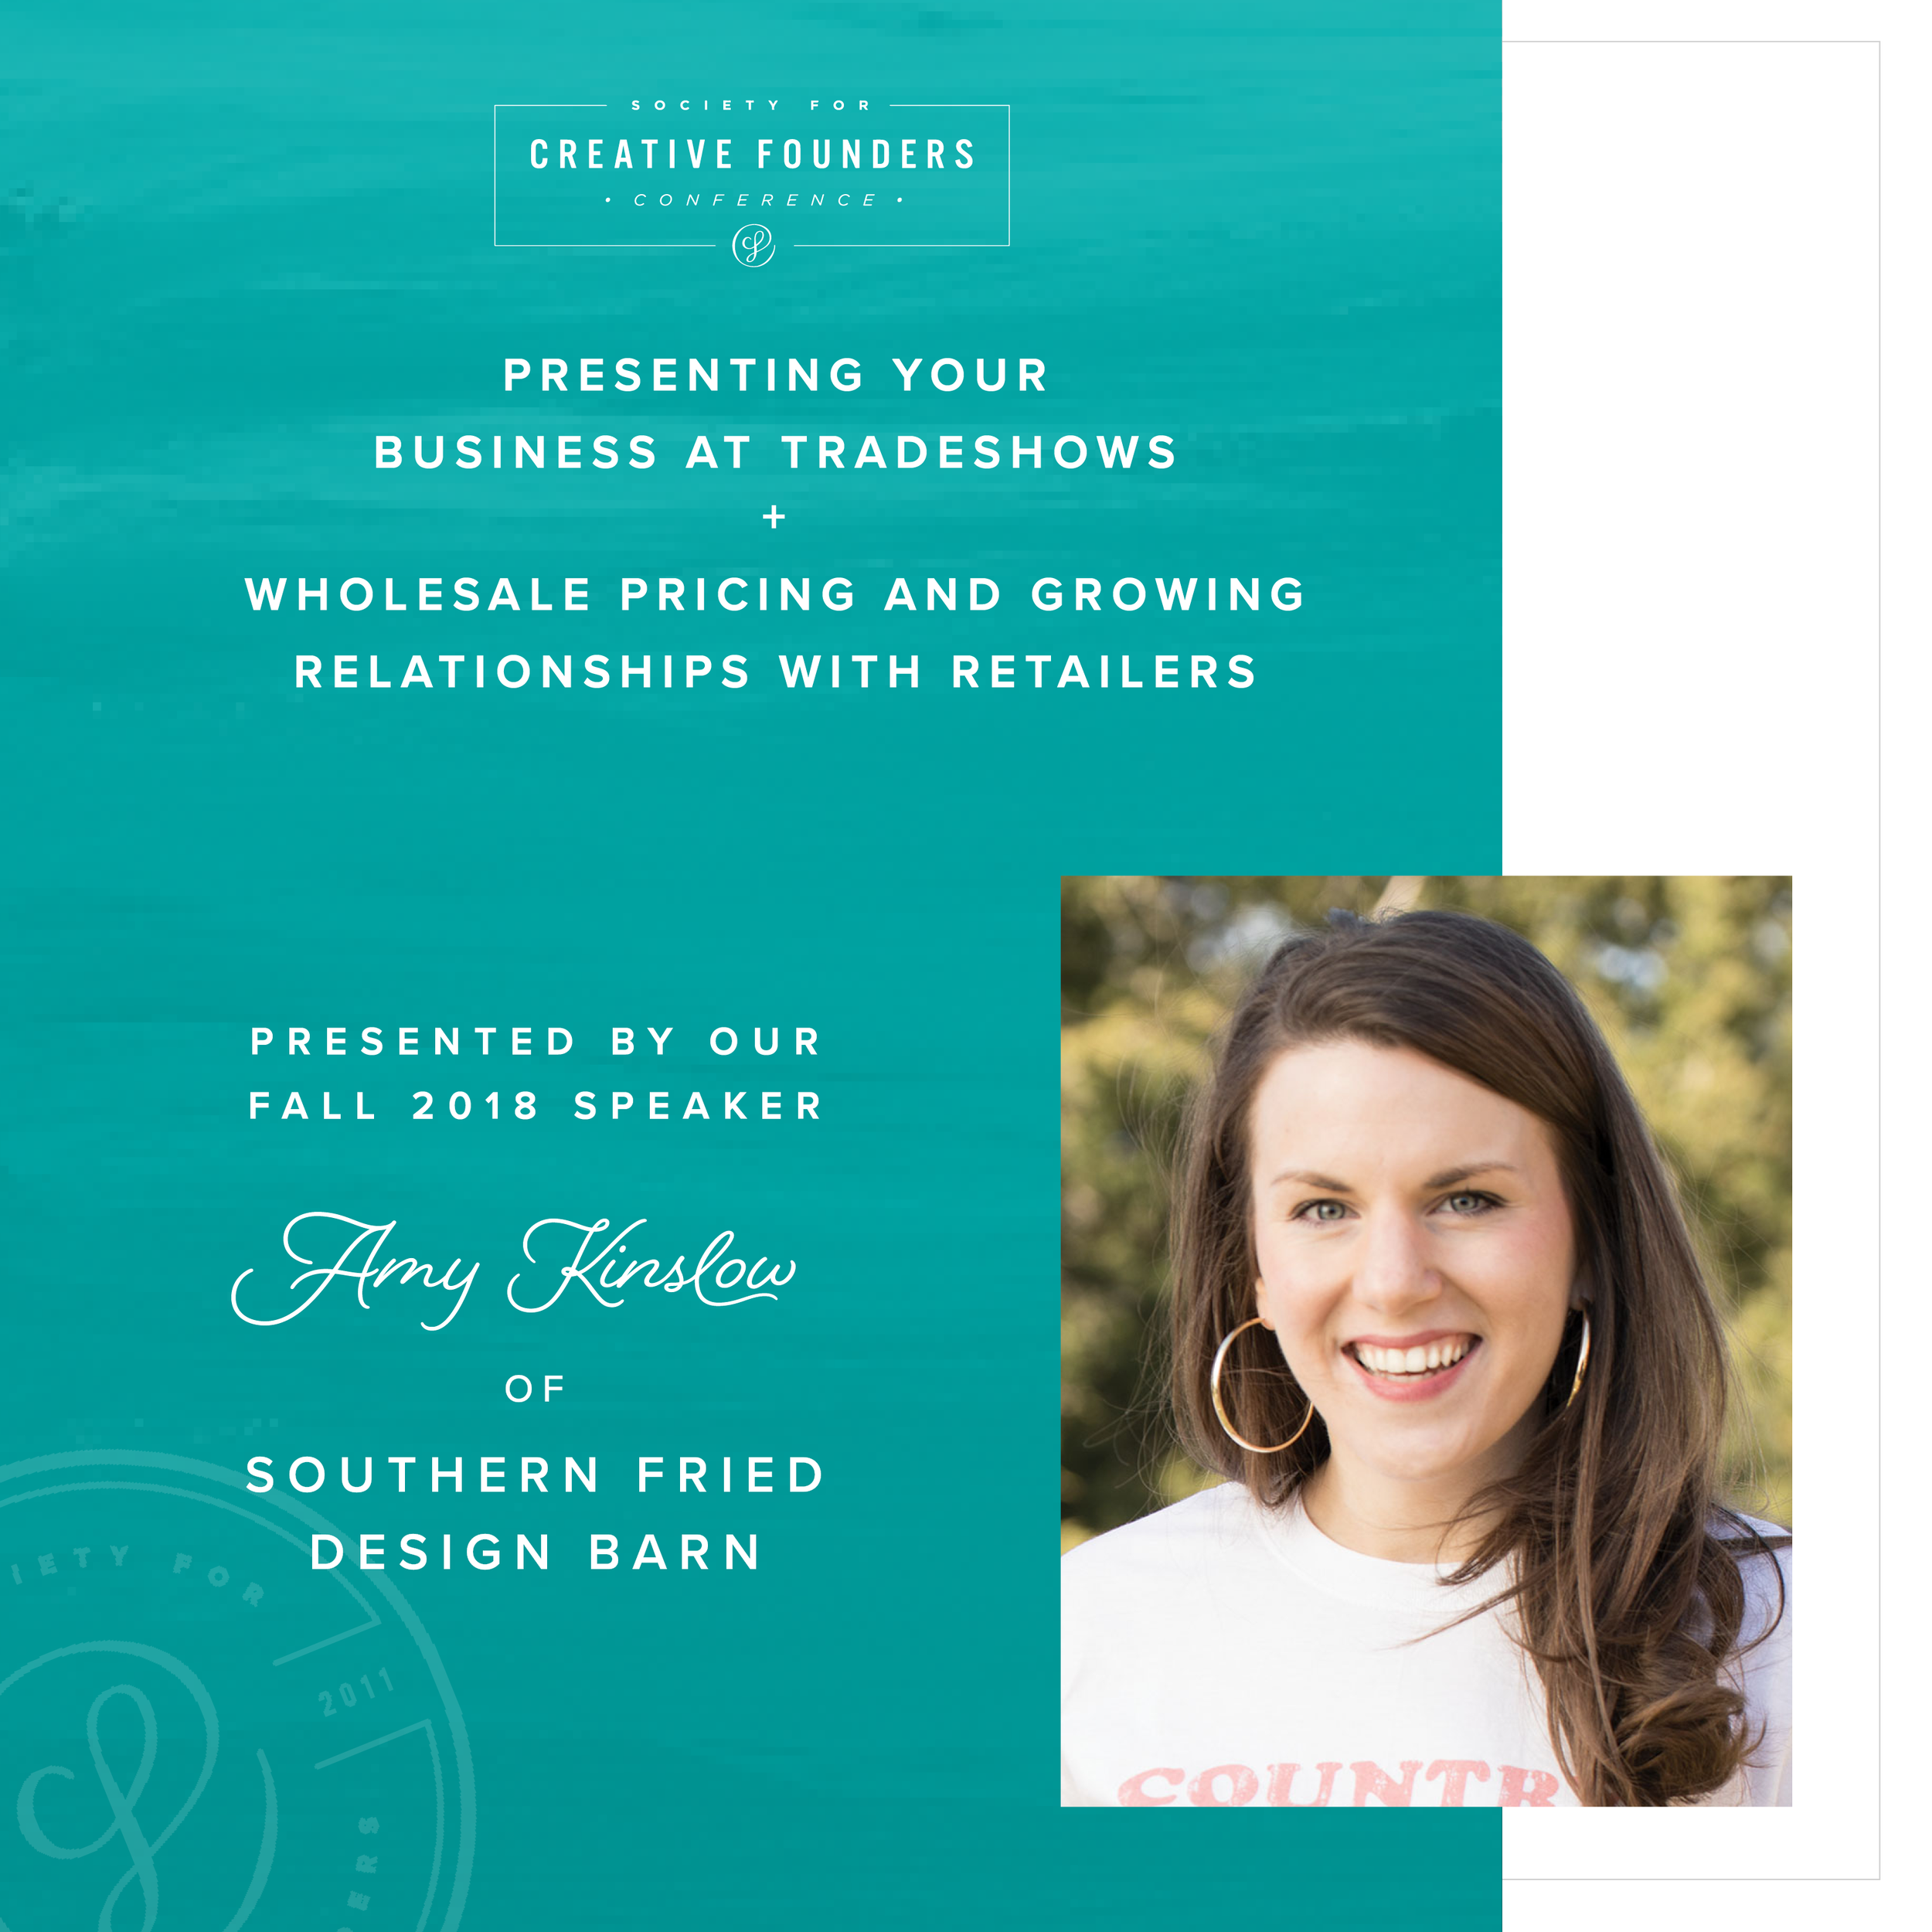 2018 Creative Founders Conference Speaker Amy Kinslow of Southern Fried Design Barn